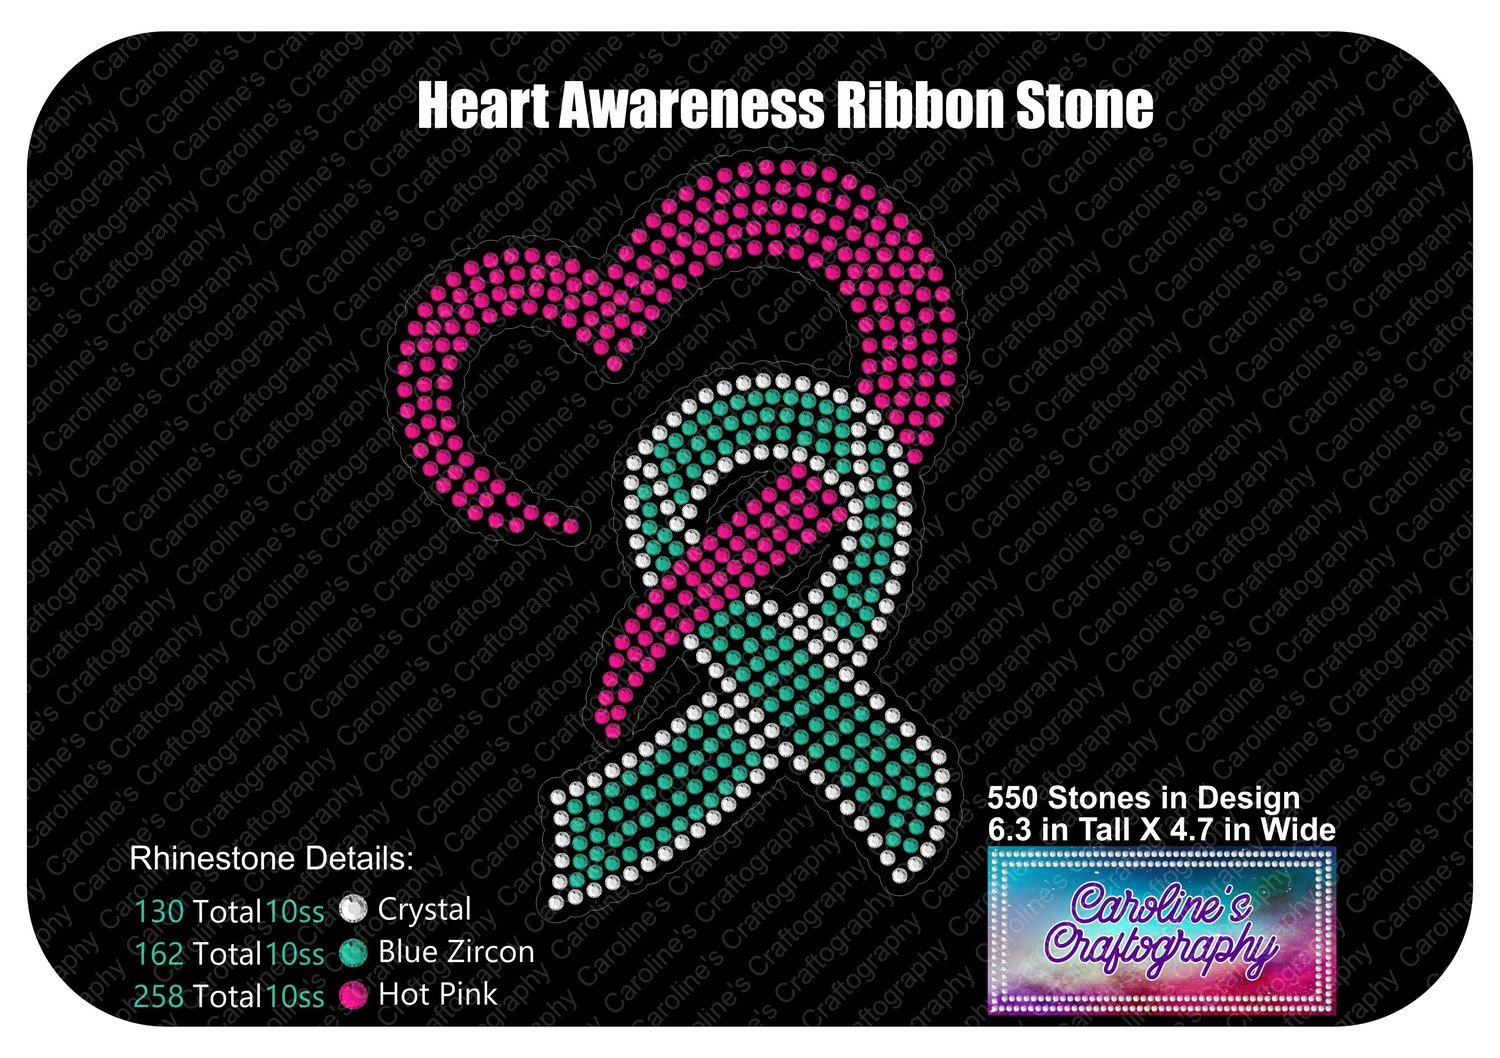 Heart Awareness Ribbon Stone Decal